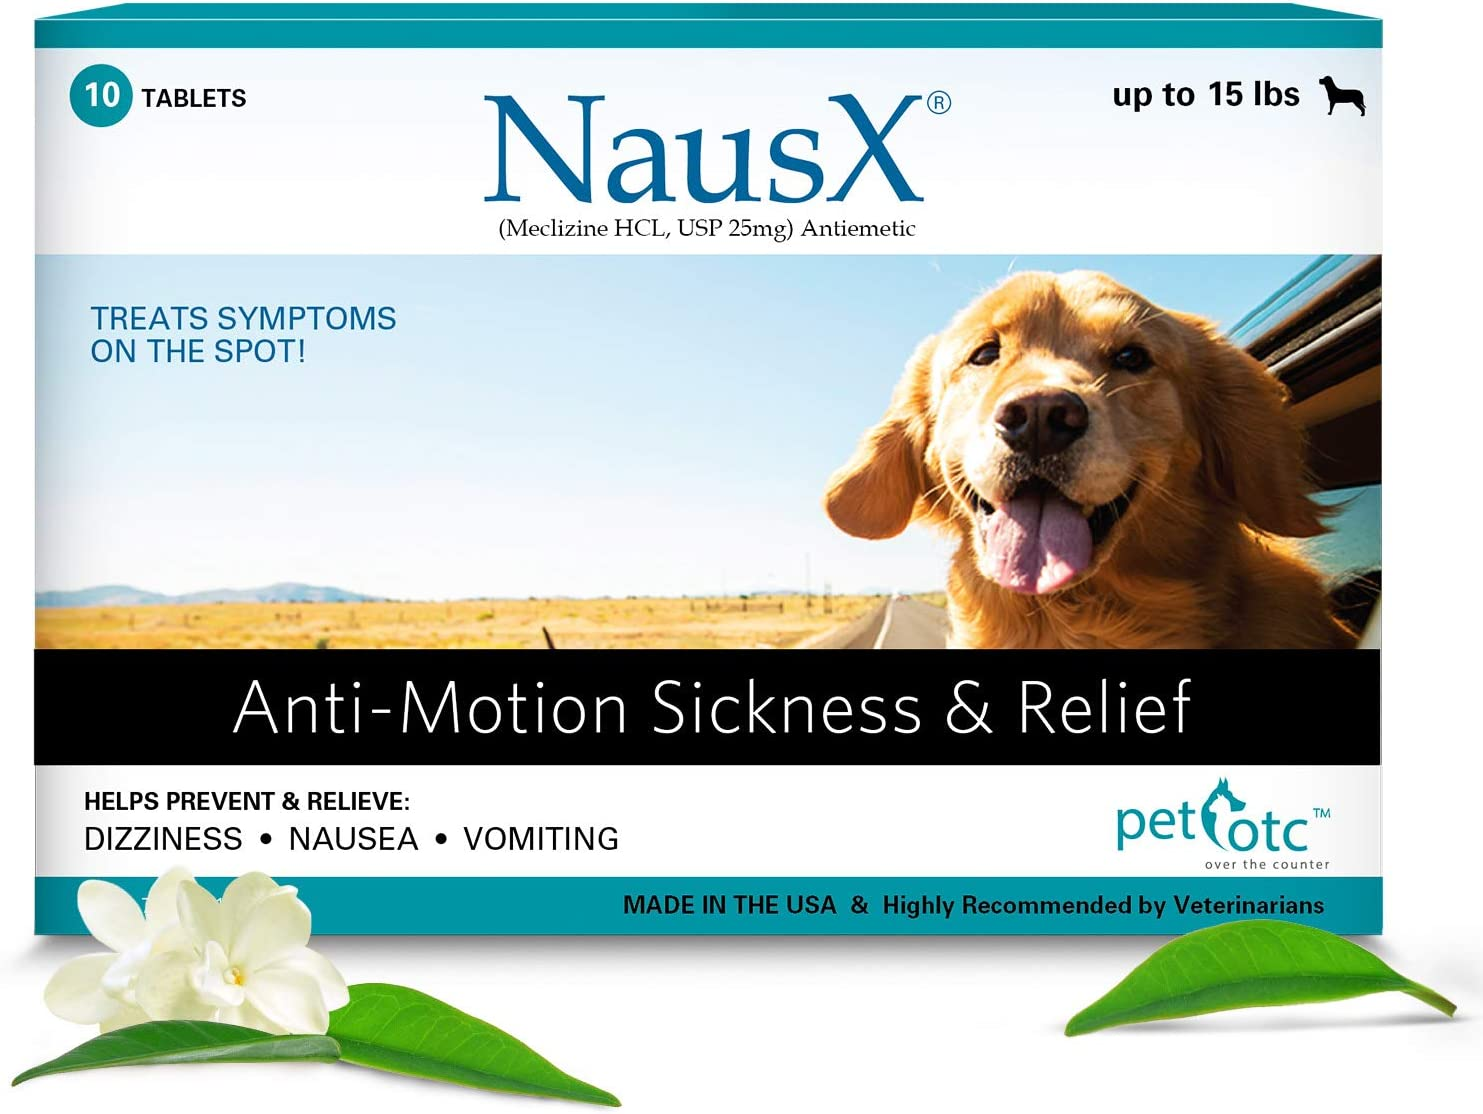 Nausx (Up to 15lbs Anti Nausea/Motion Sickness Treatment and Preventative for Dogs